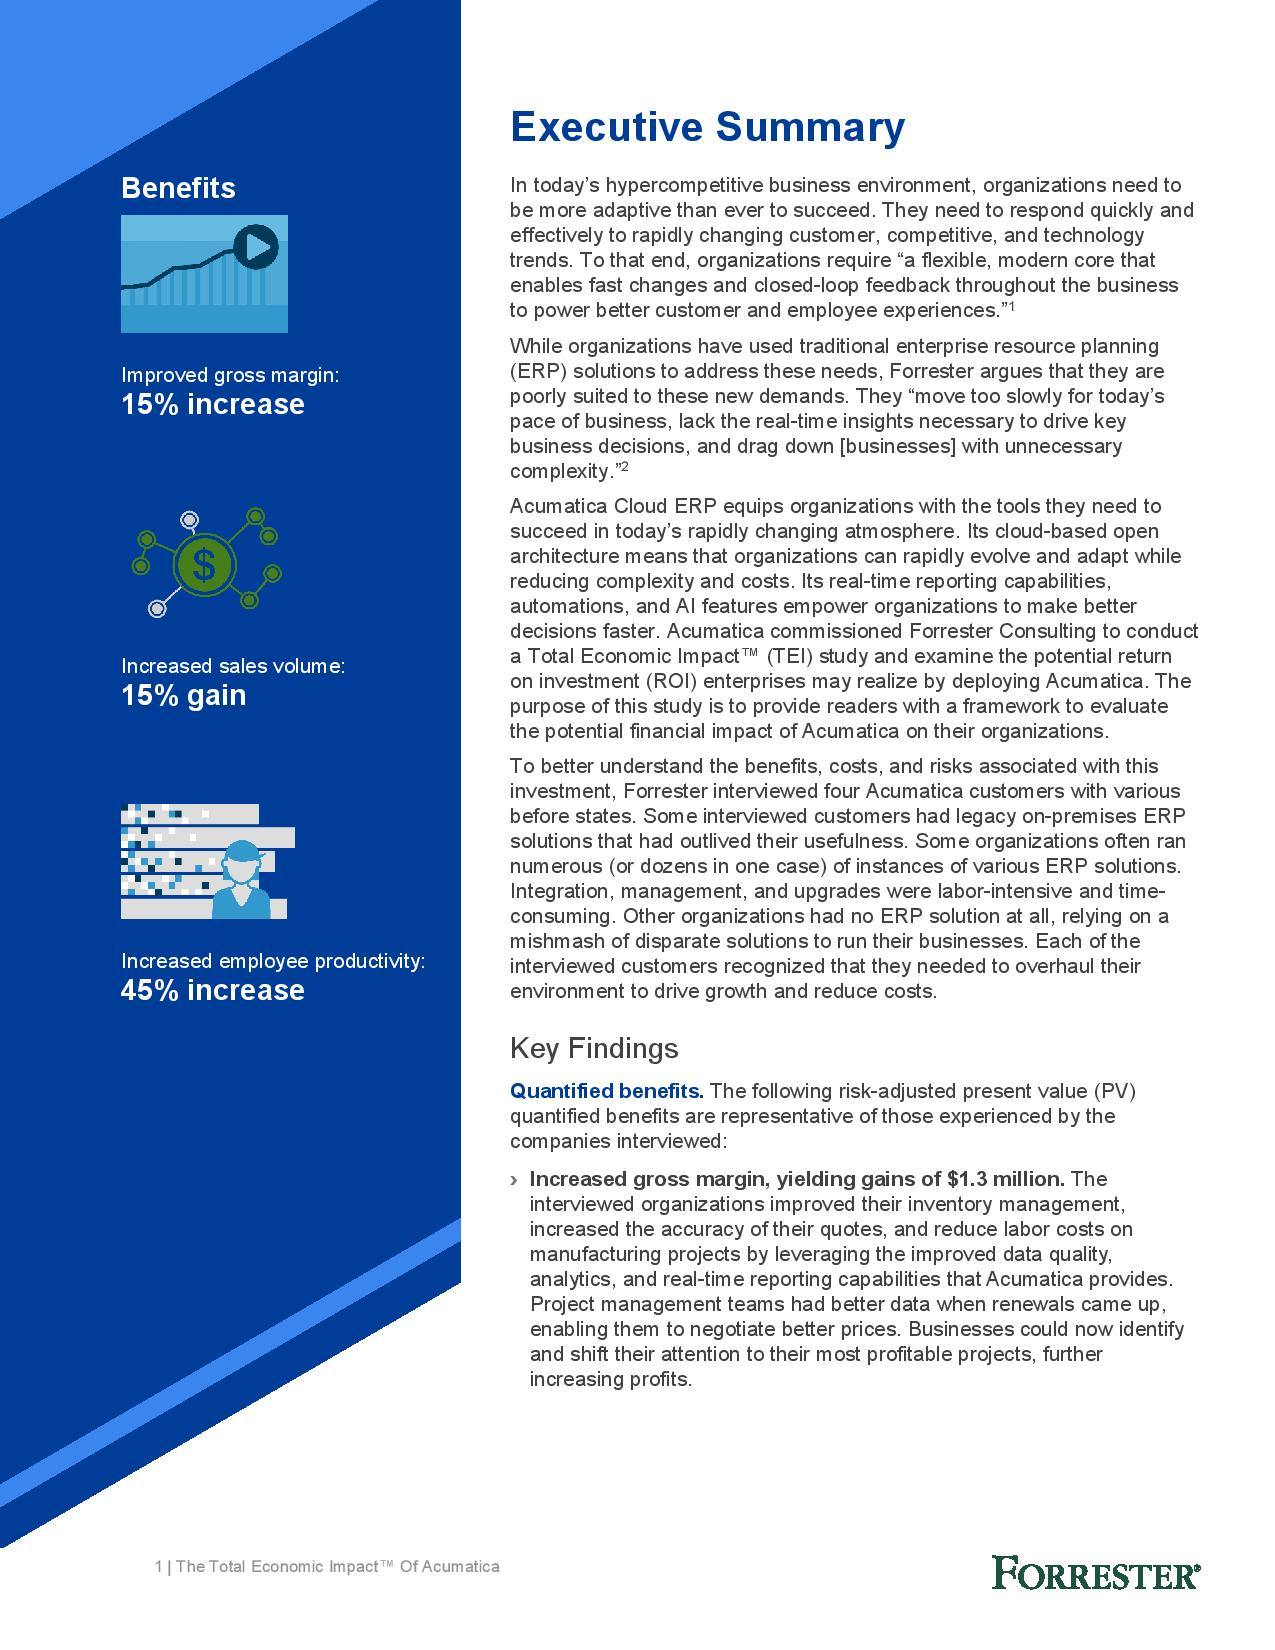 Discover the Financial and Business Benefits of Cloud ERP Adoption, page 2